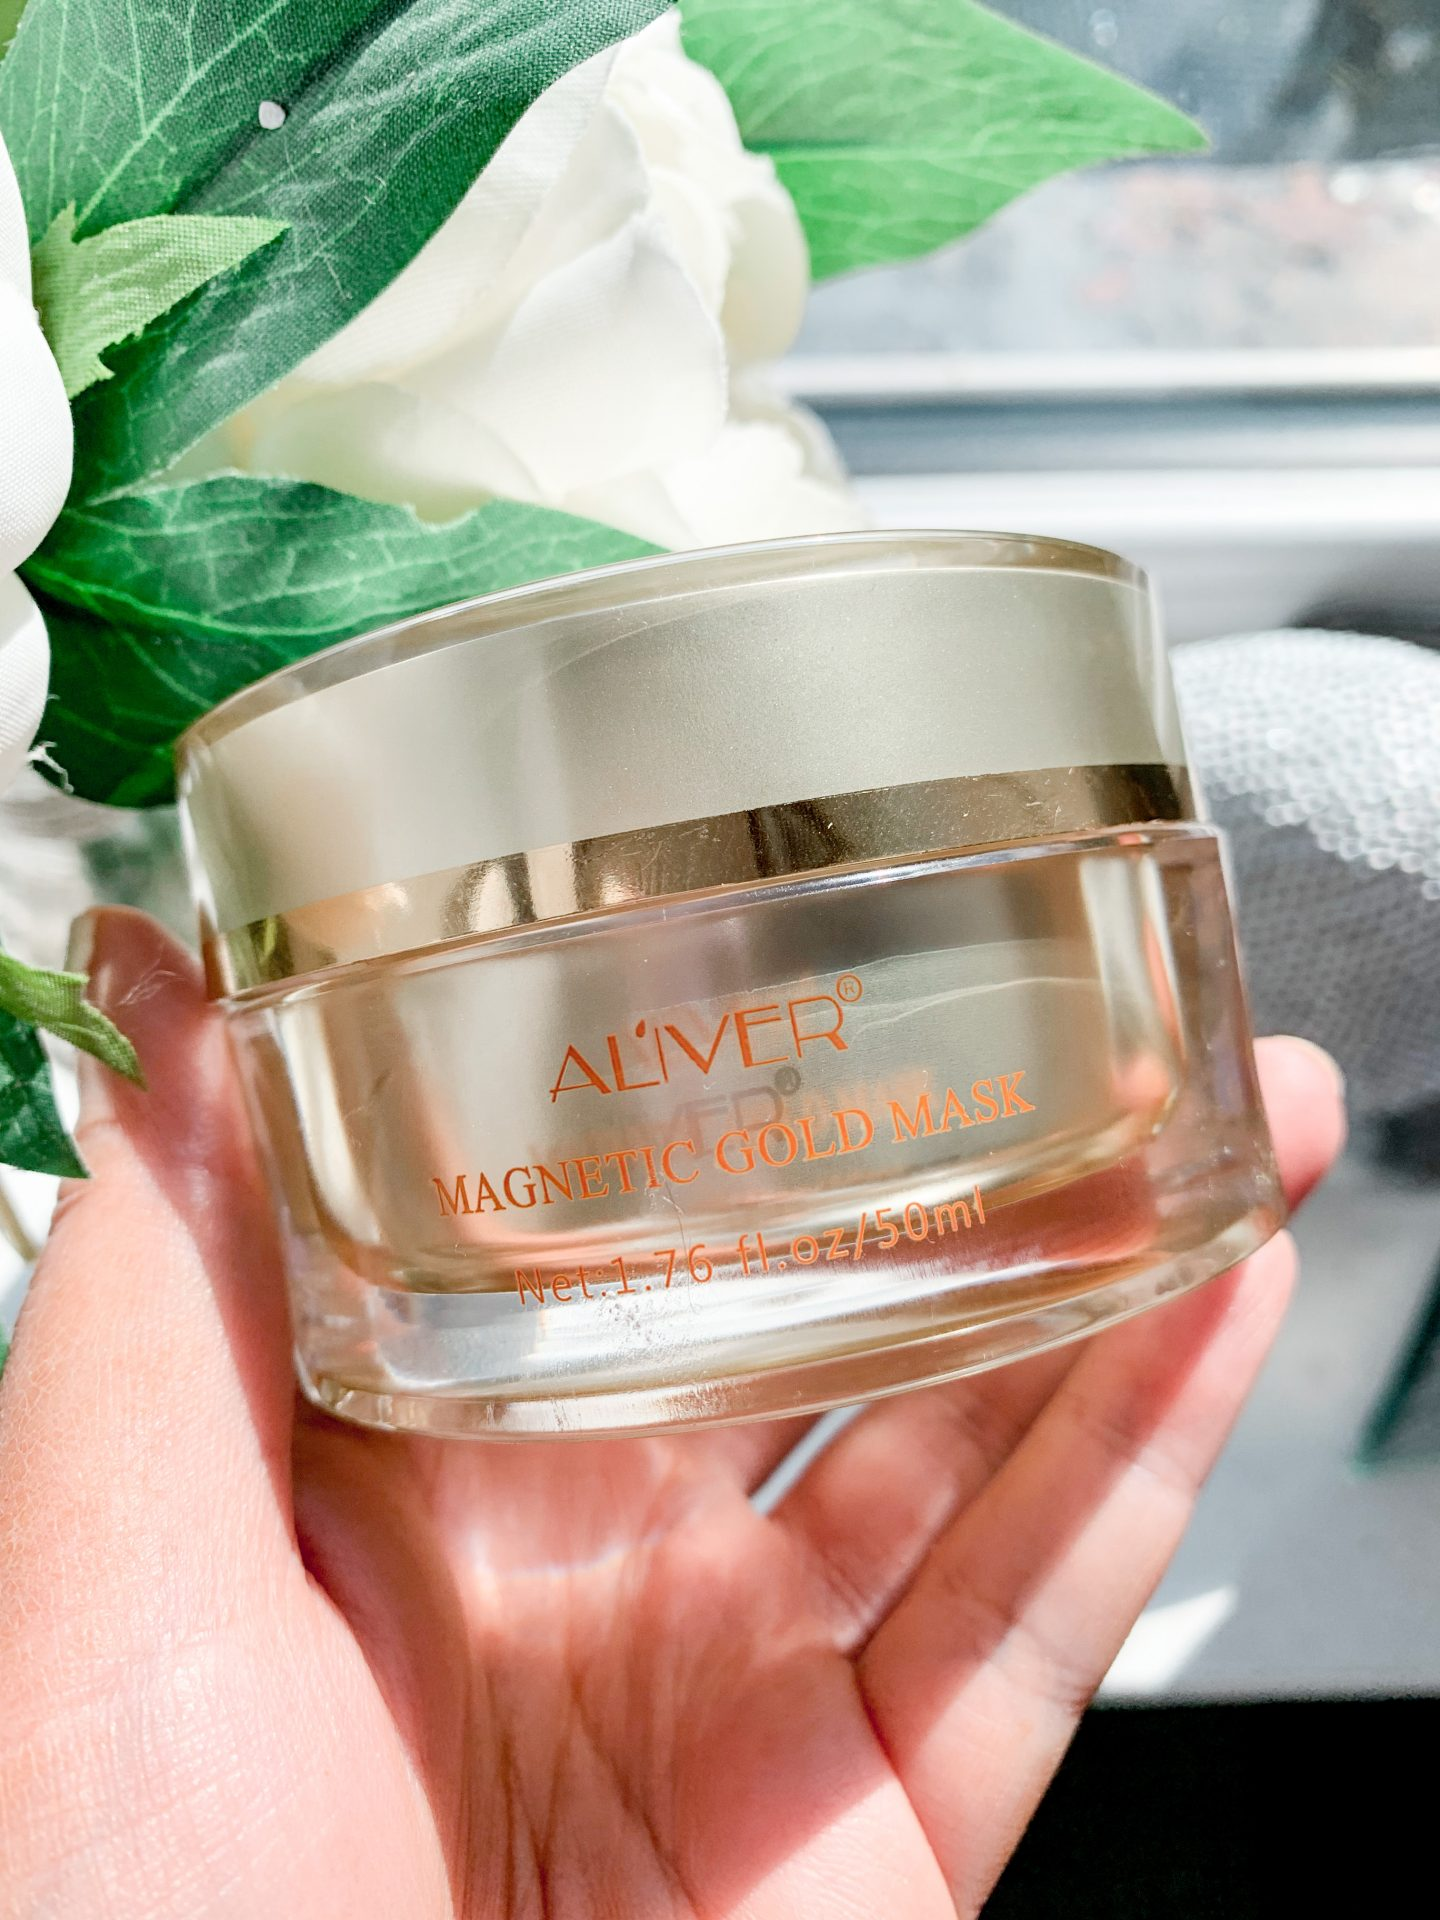 Aliver Gold Magnetic Mask Review